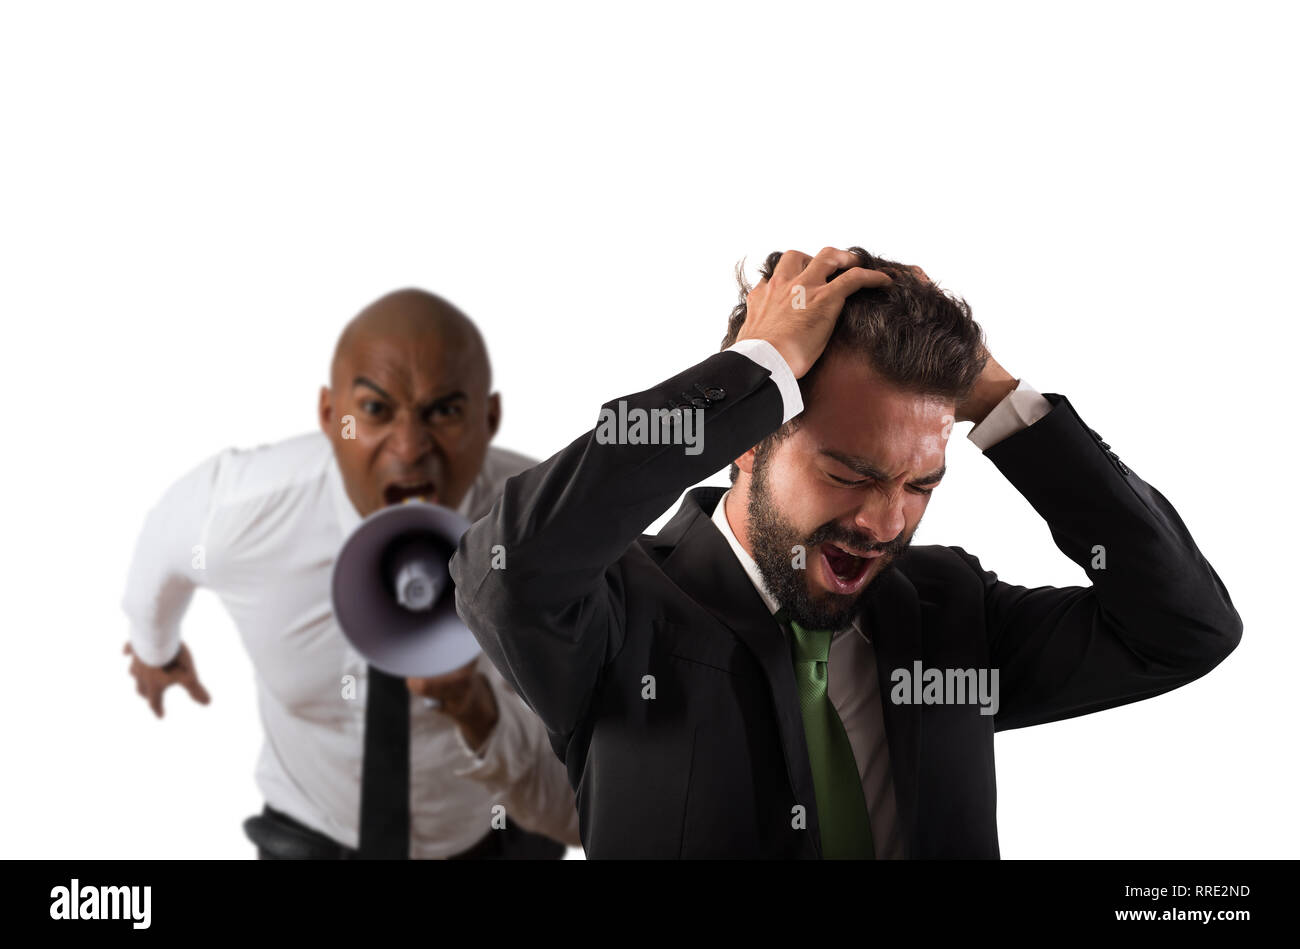 Boss scolds with megaphone a desperate employee with a verbal aggression - Stock Image